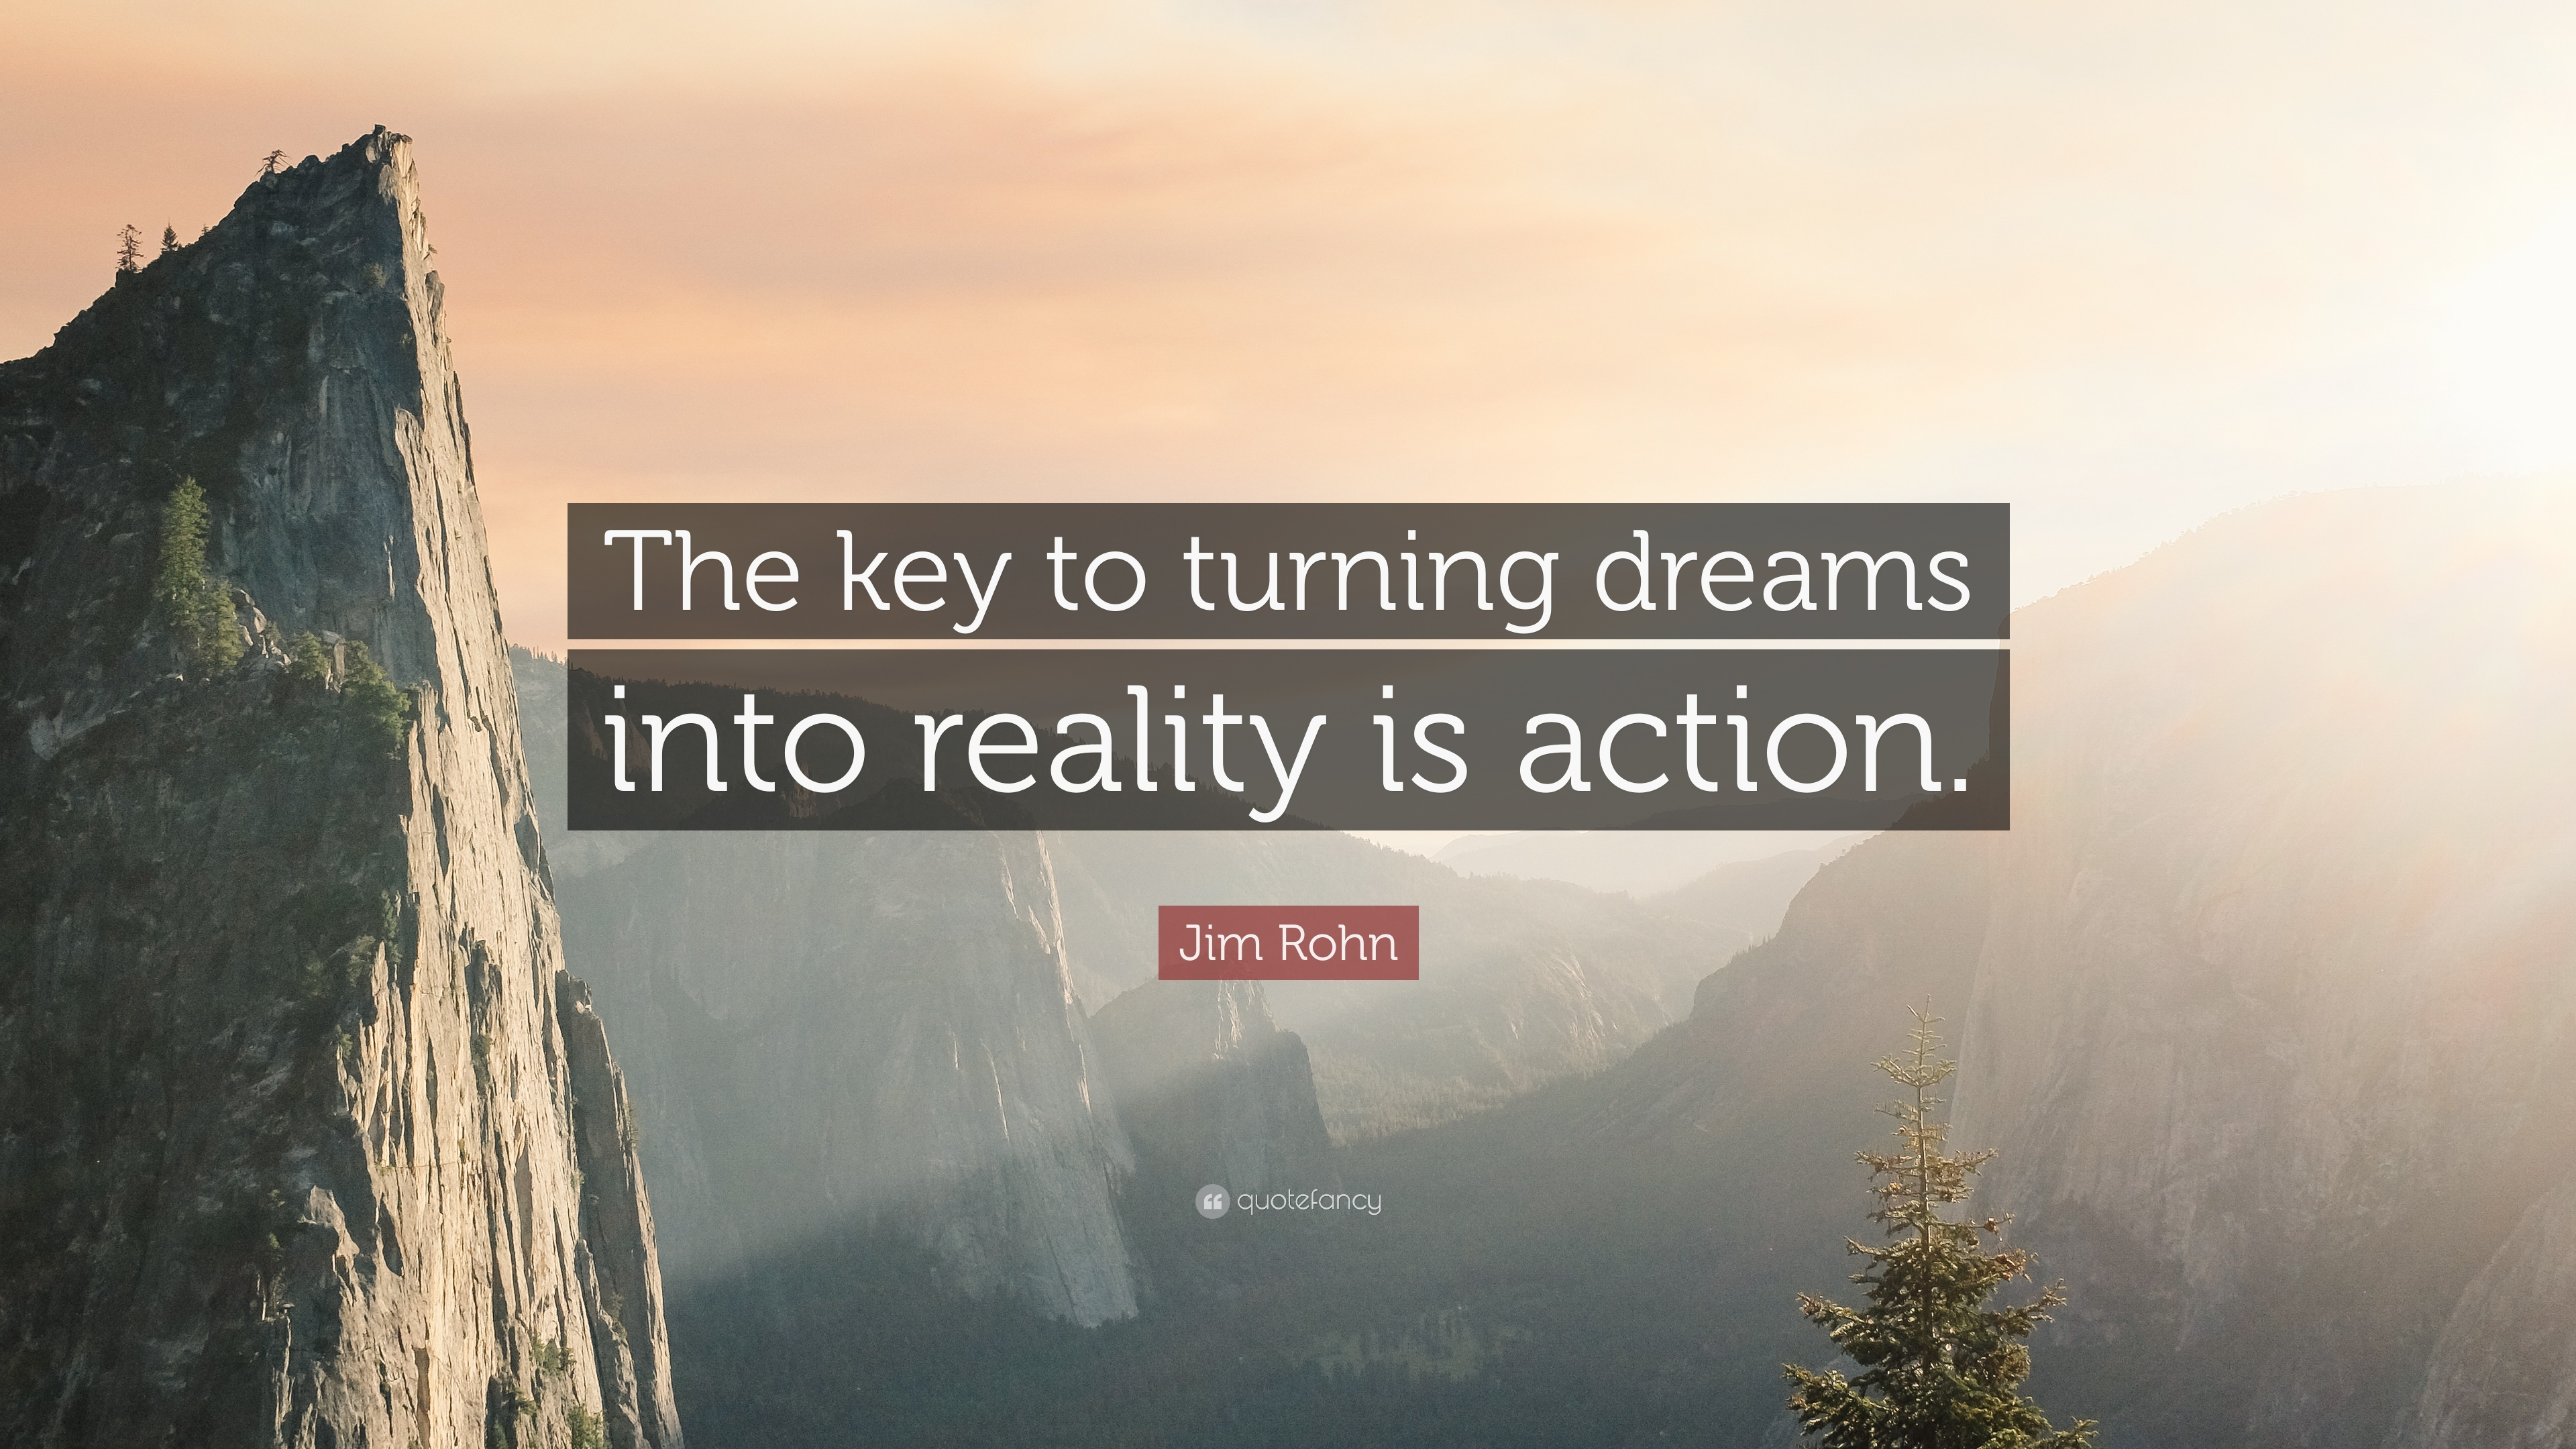 Jim Rohn Quote u201cThe key to turning